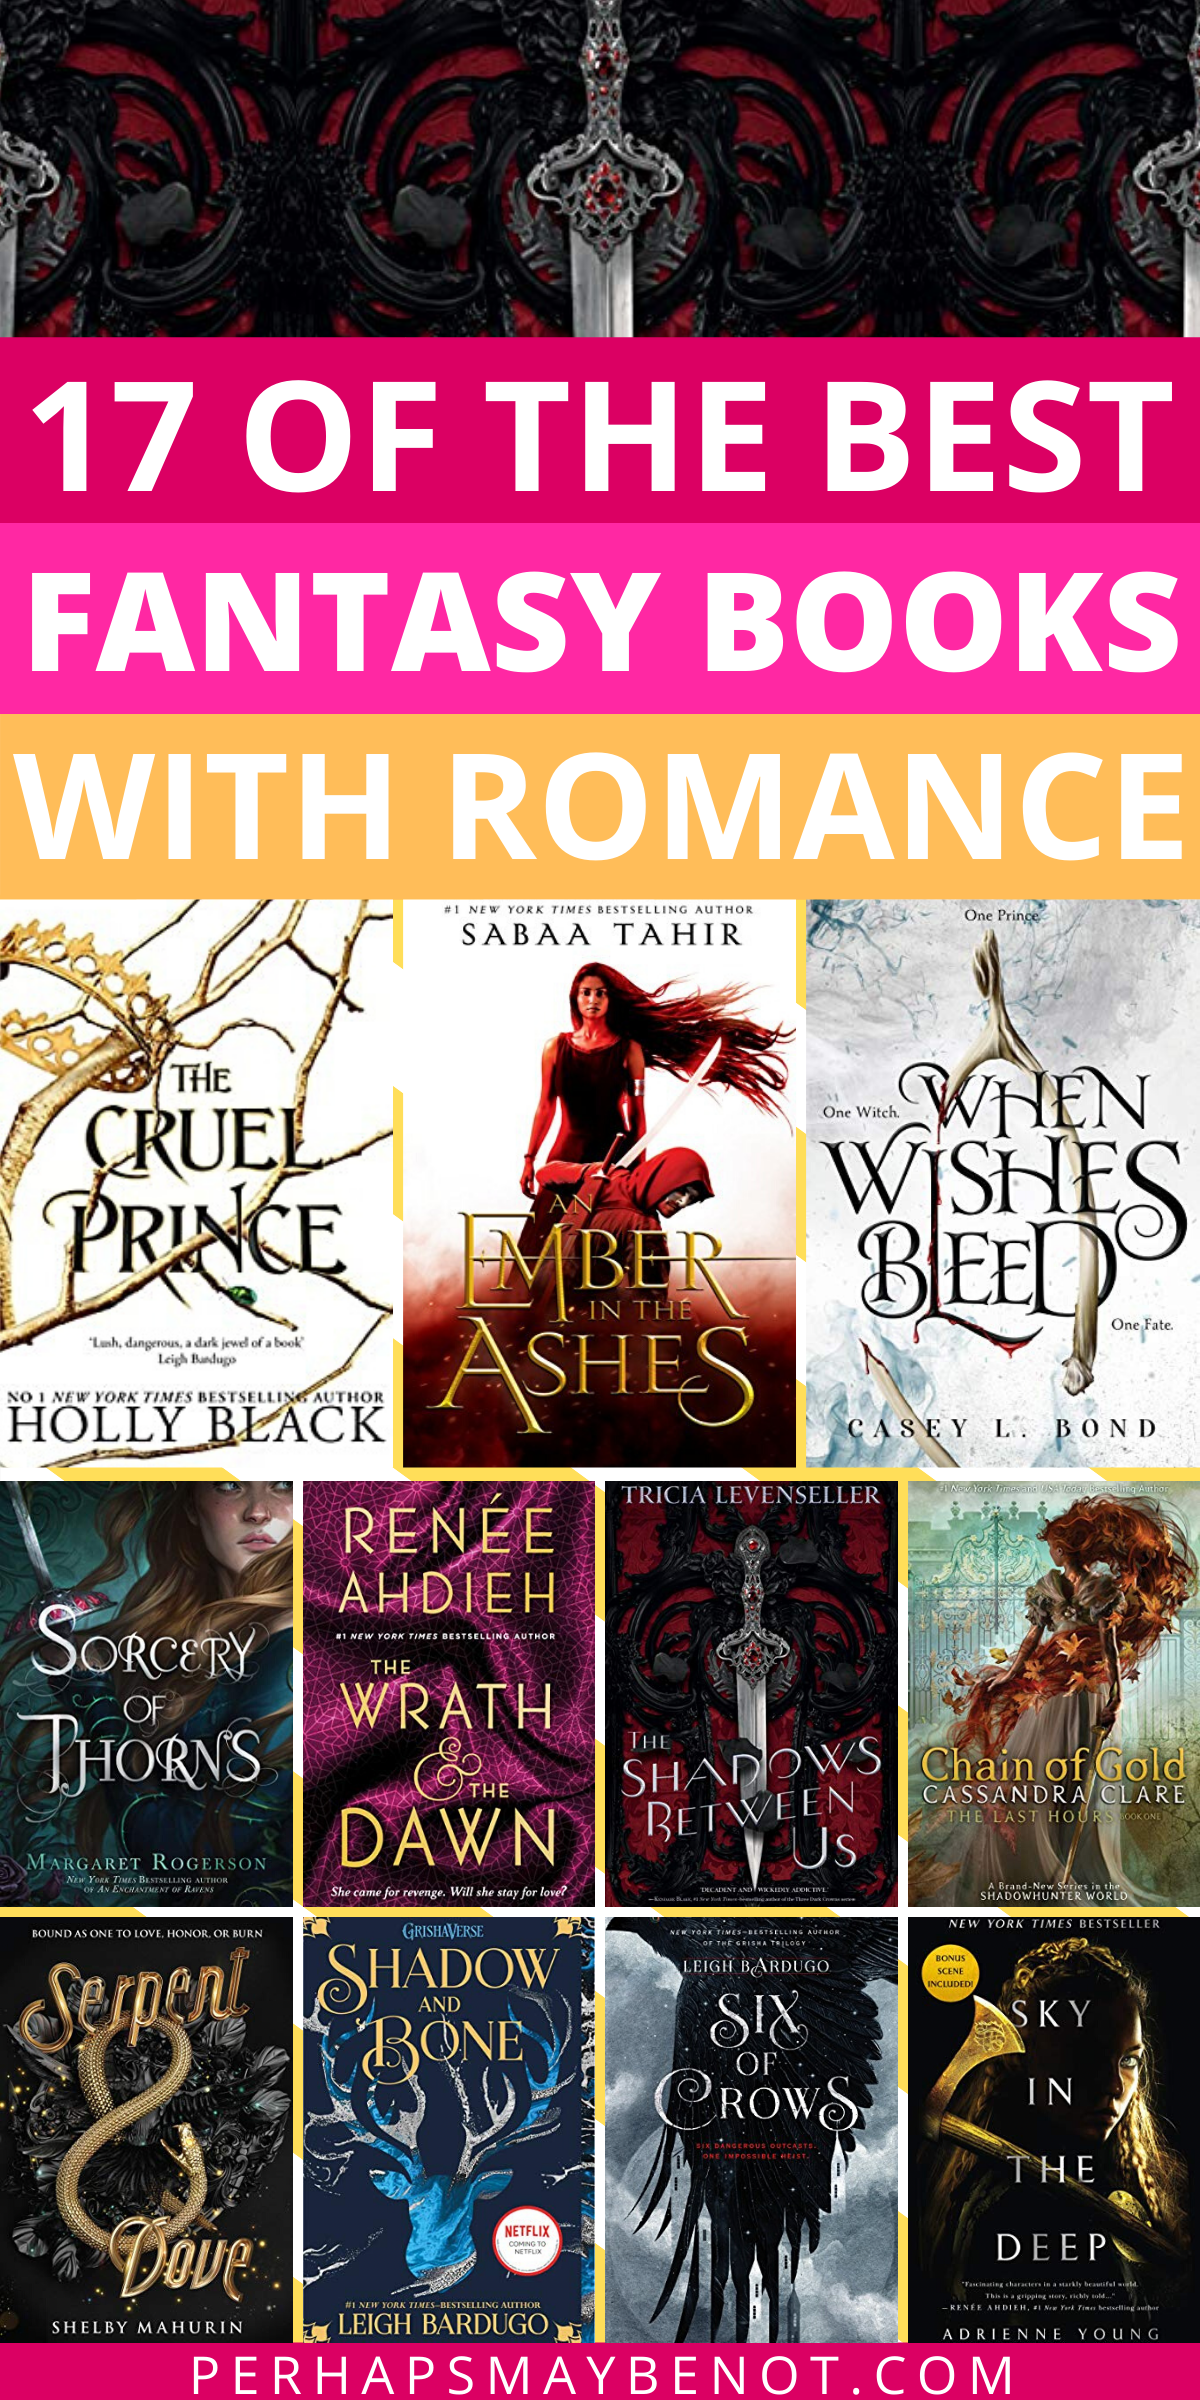 If you're in the mood for some fantasy with a splash of romance, you'll love these exciting and magical books. #fantasybooks #romancebooks #fantasyromance #bookstoread #booksworthreading #bestbooks